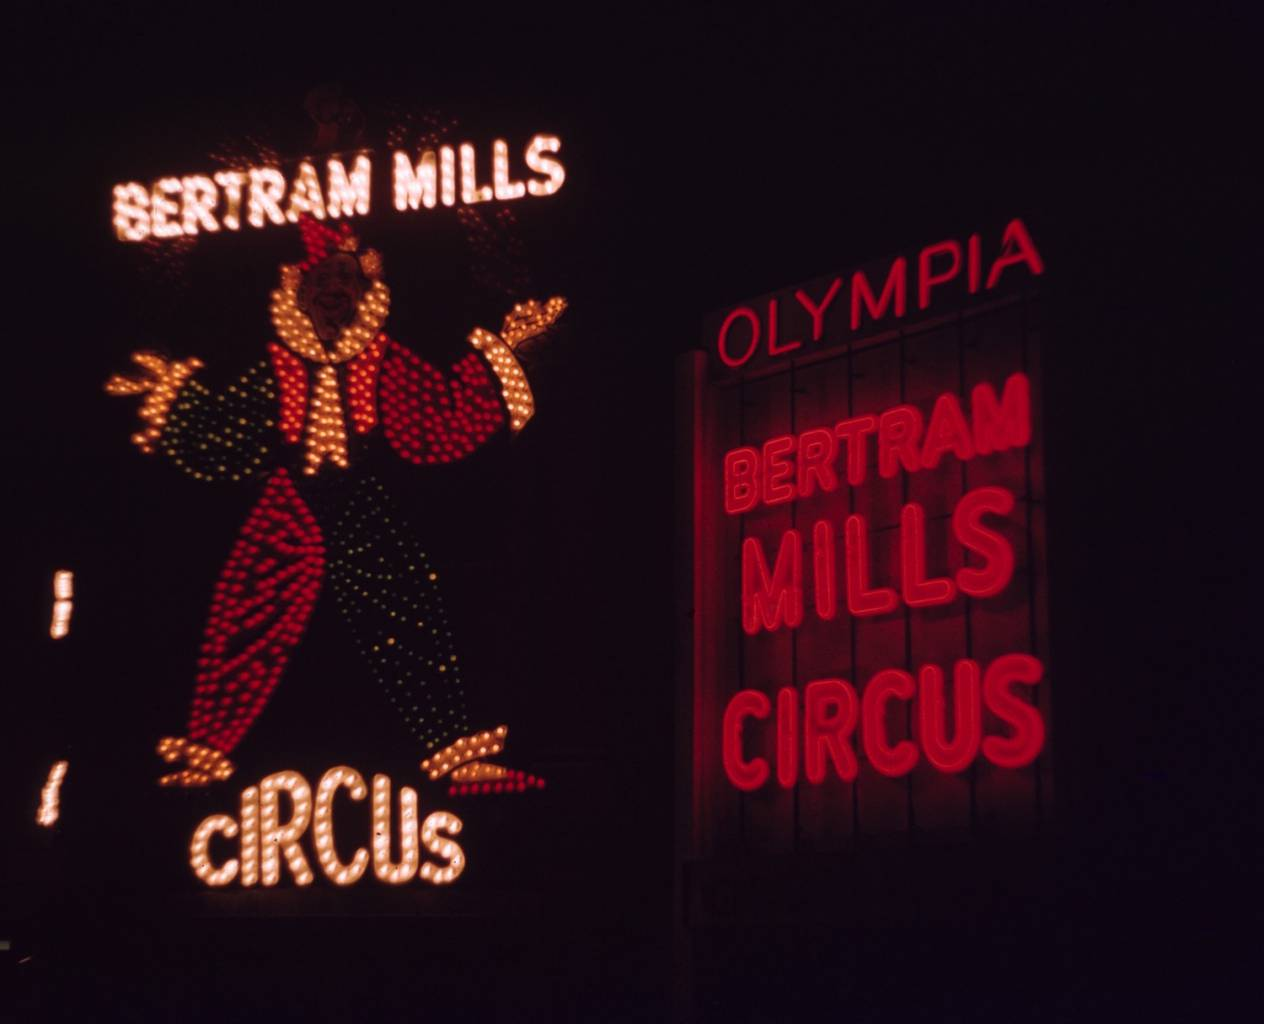 The lights of Bertram Mills Circus at Olympia by Vern Orton, 1955.